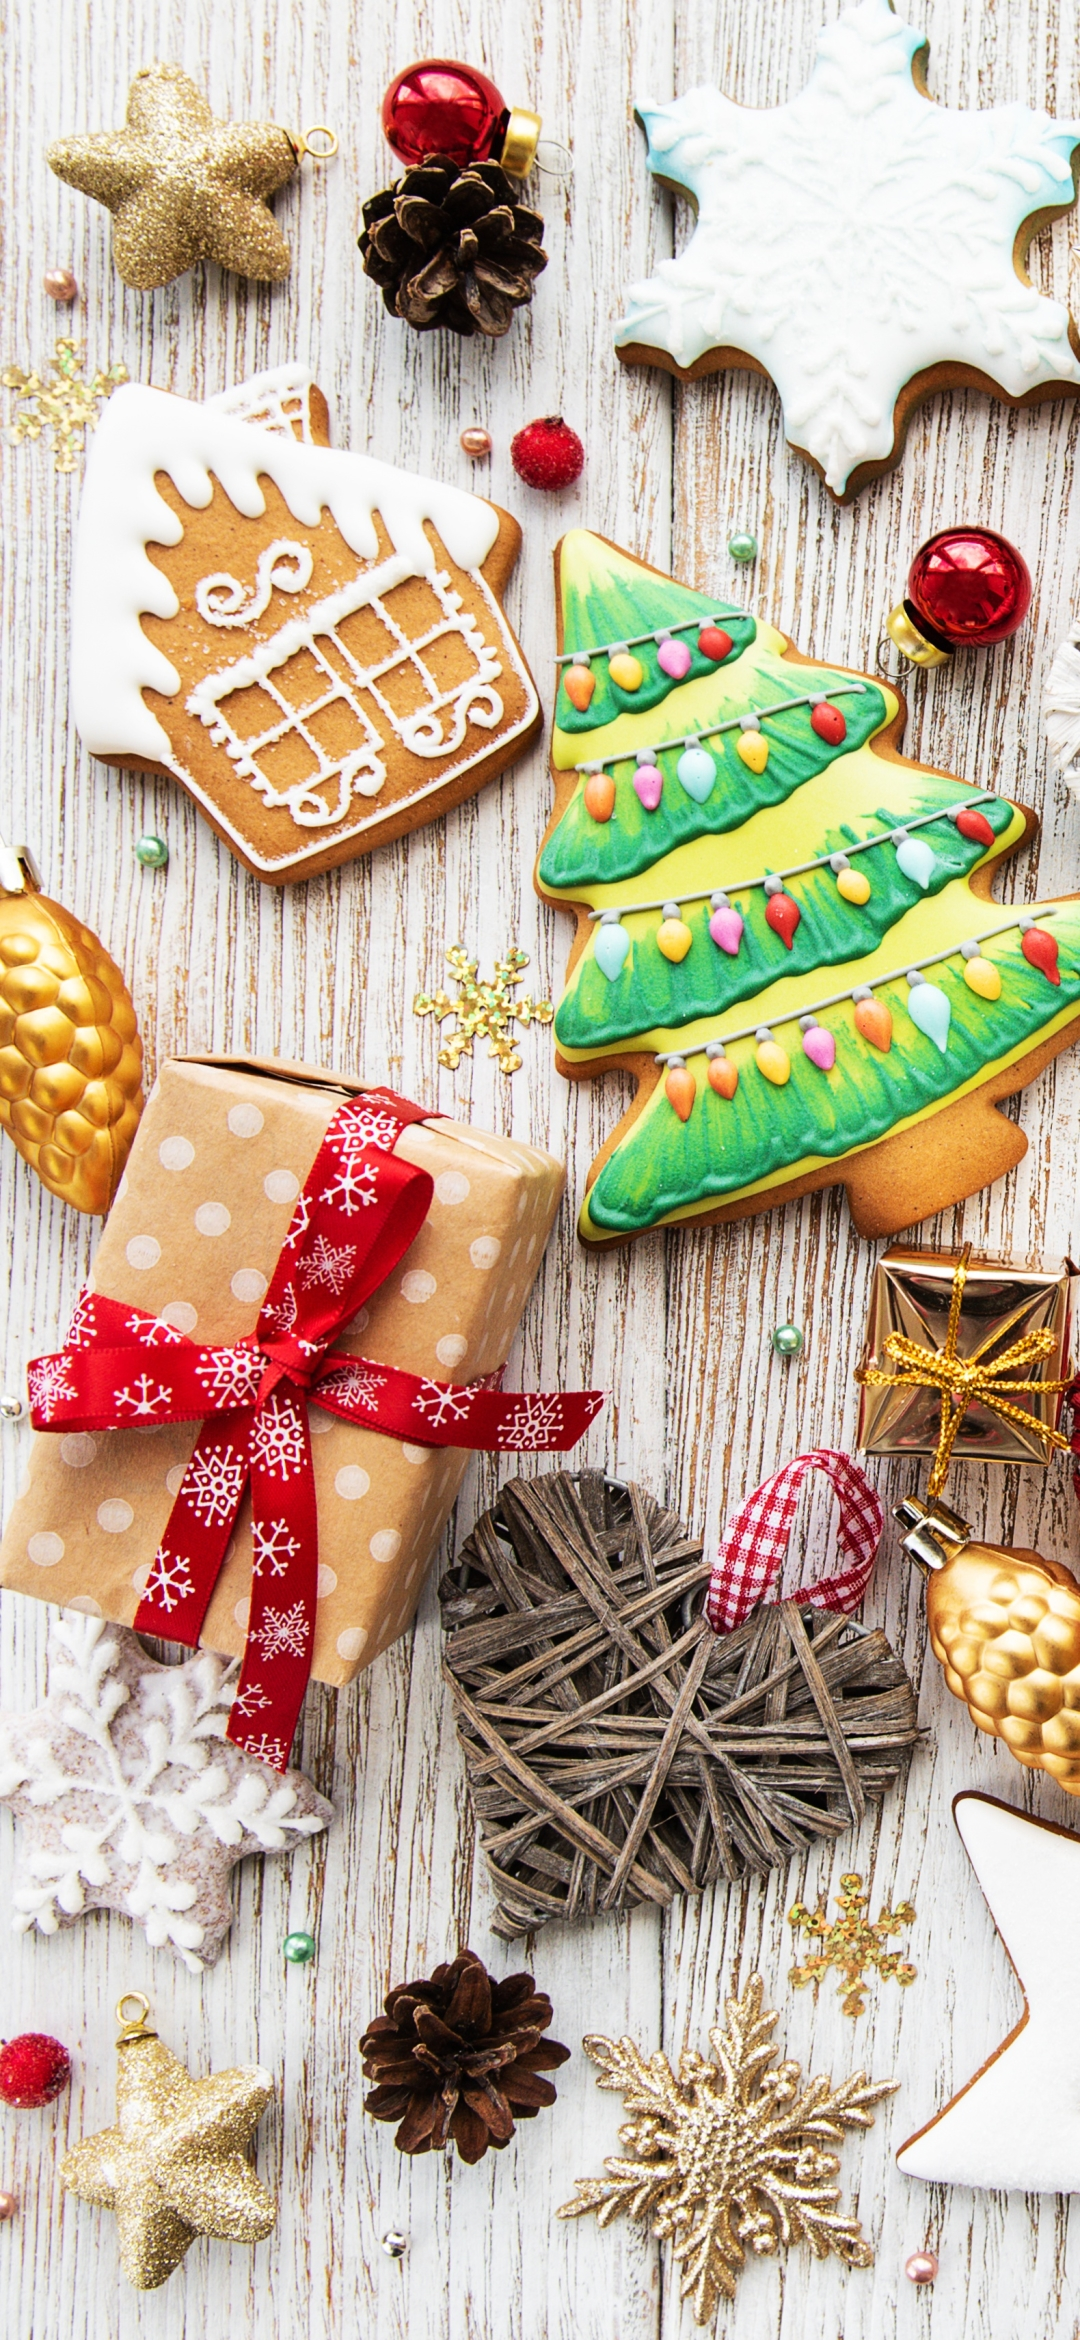 Christmas ornaments Mobile wallpaper